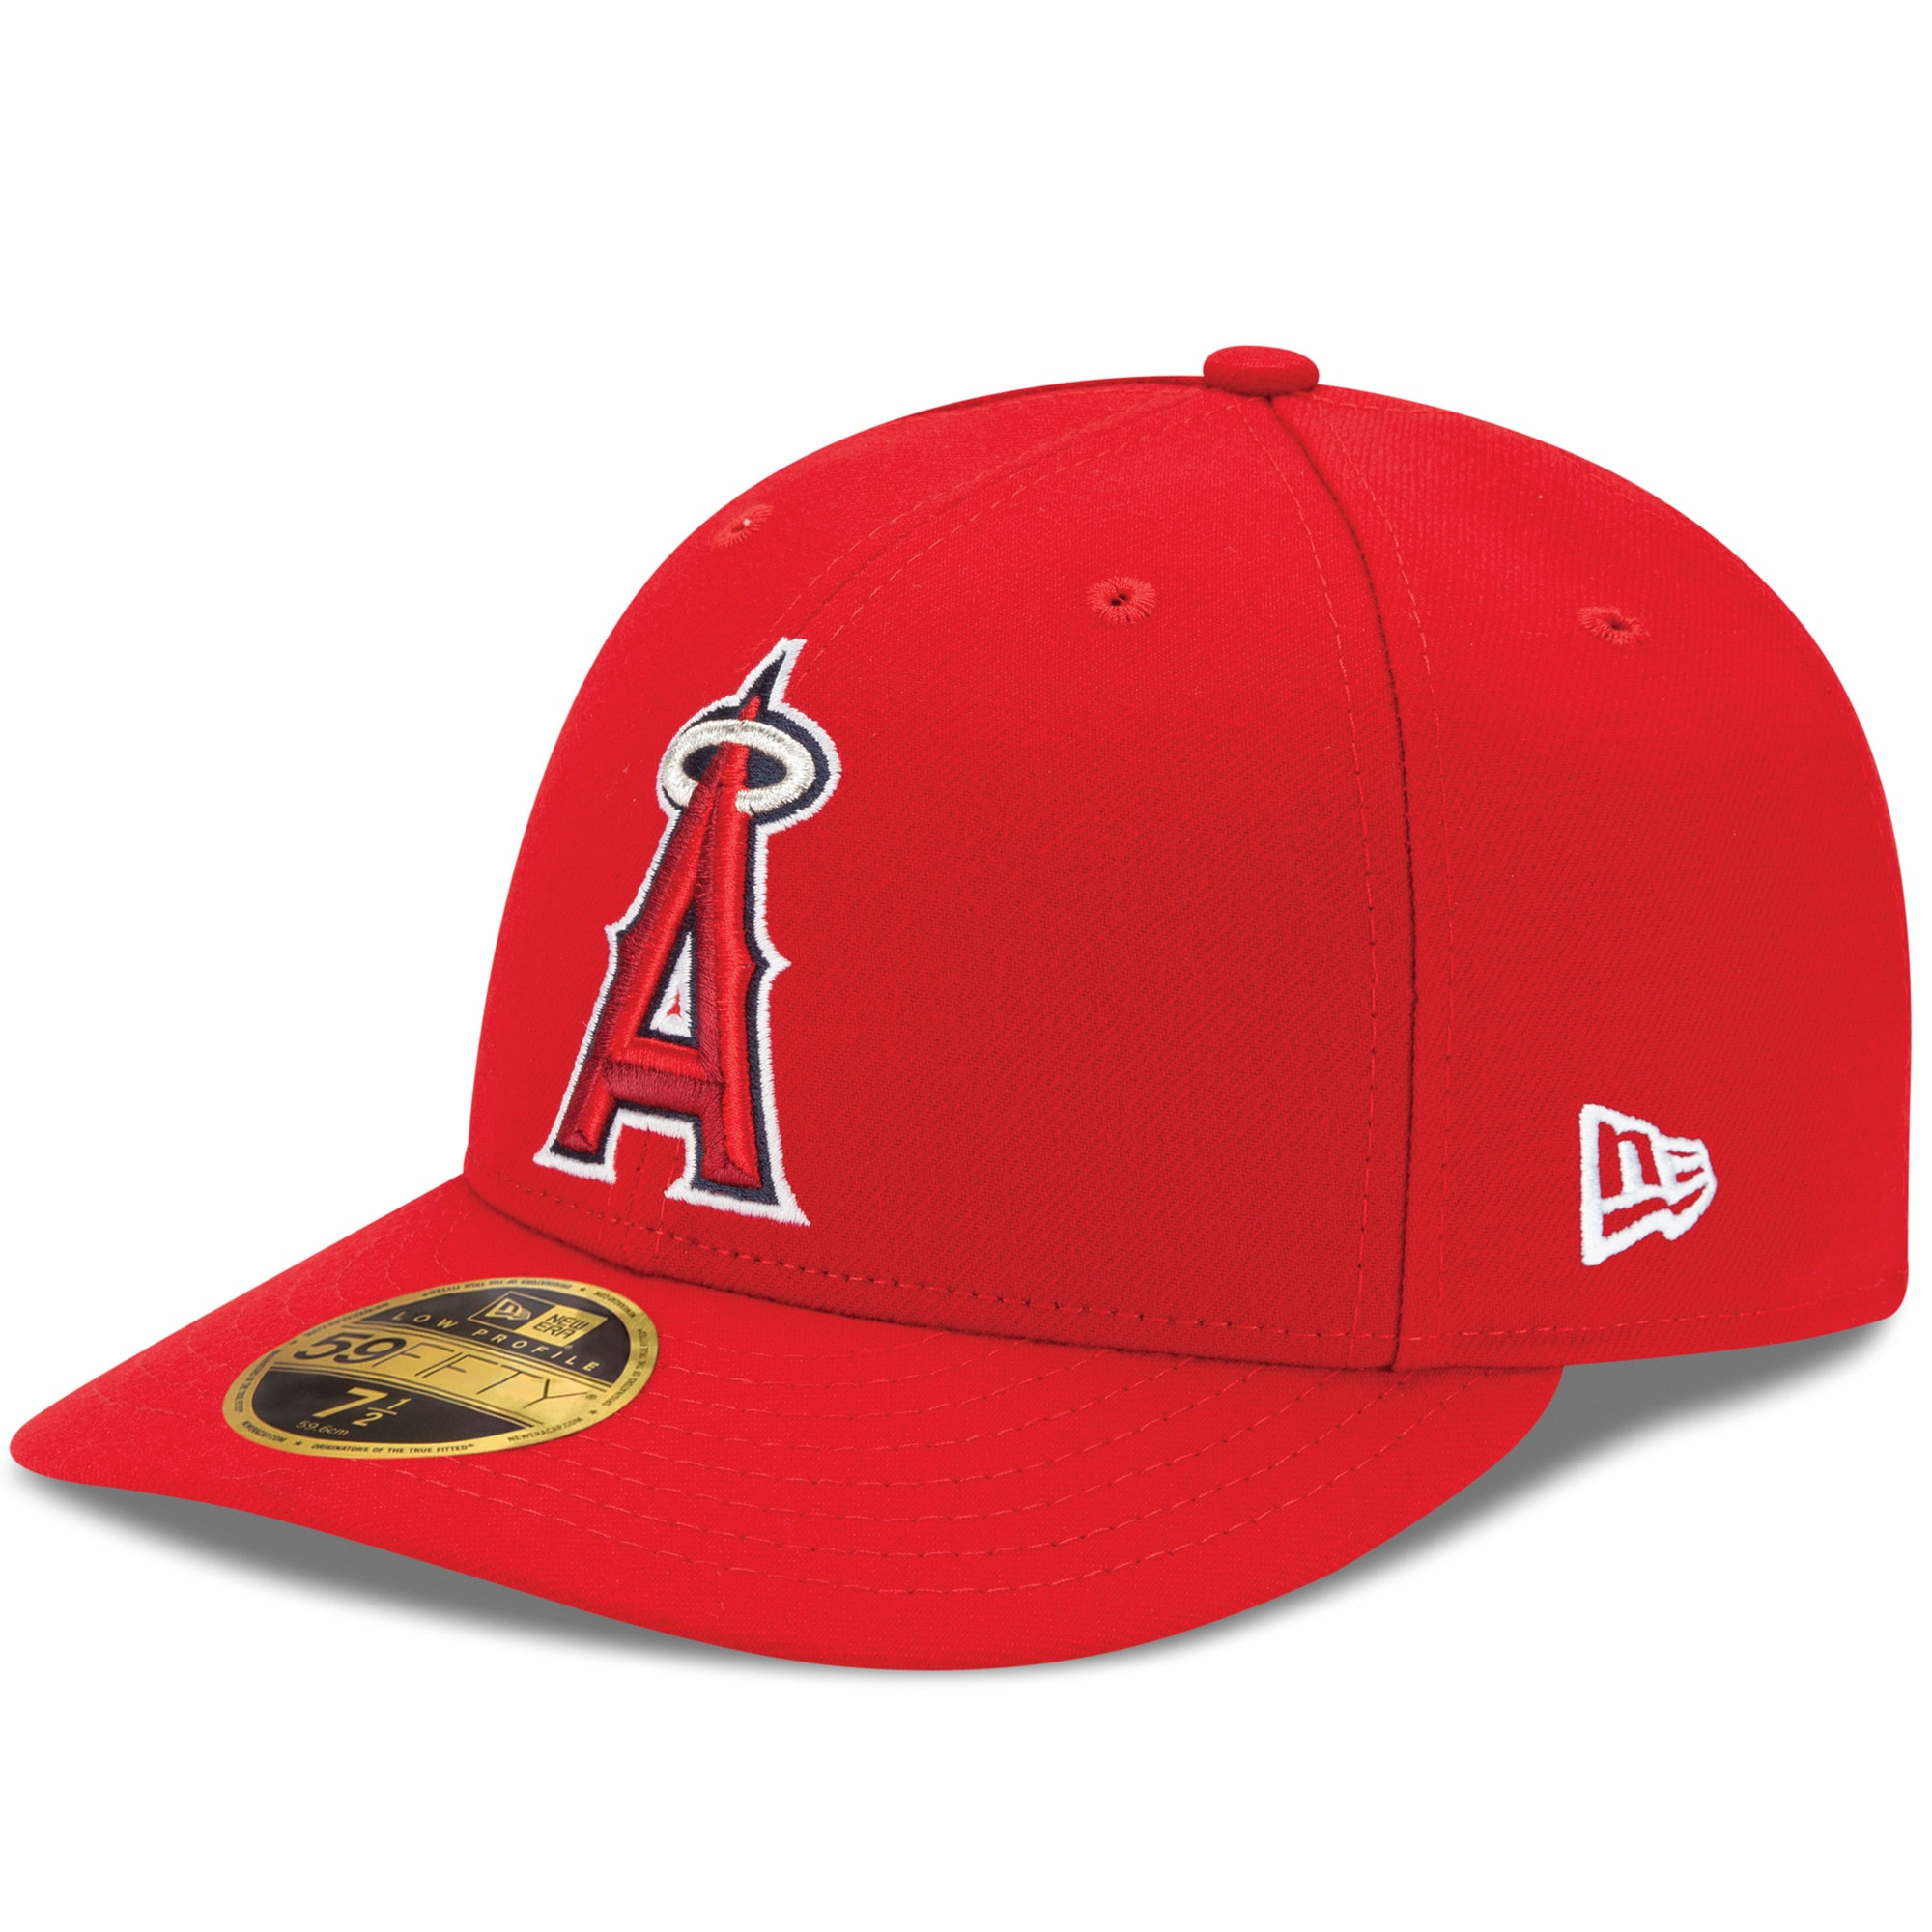 Los Angeles Angels New Era Alt Authentic Collection On-Field Low Profile 59FIFTY Fitted Hat - Red